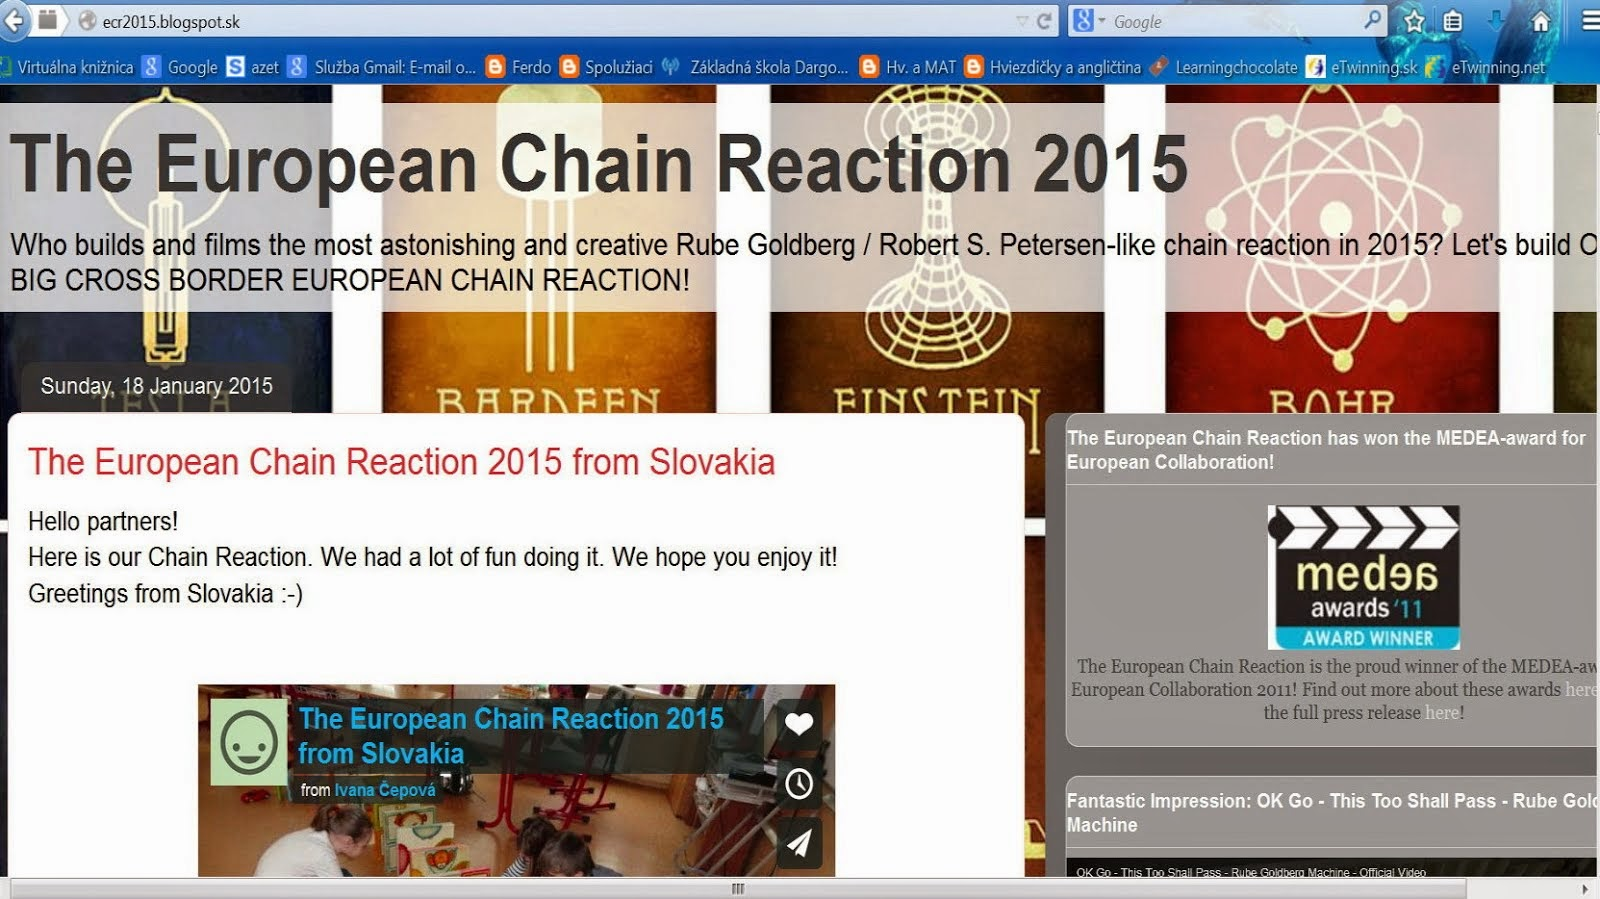 Projekt European Chain Reaction 2015